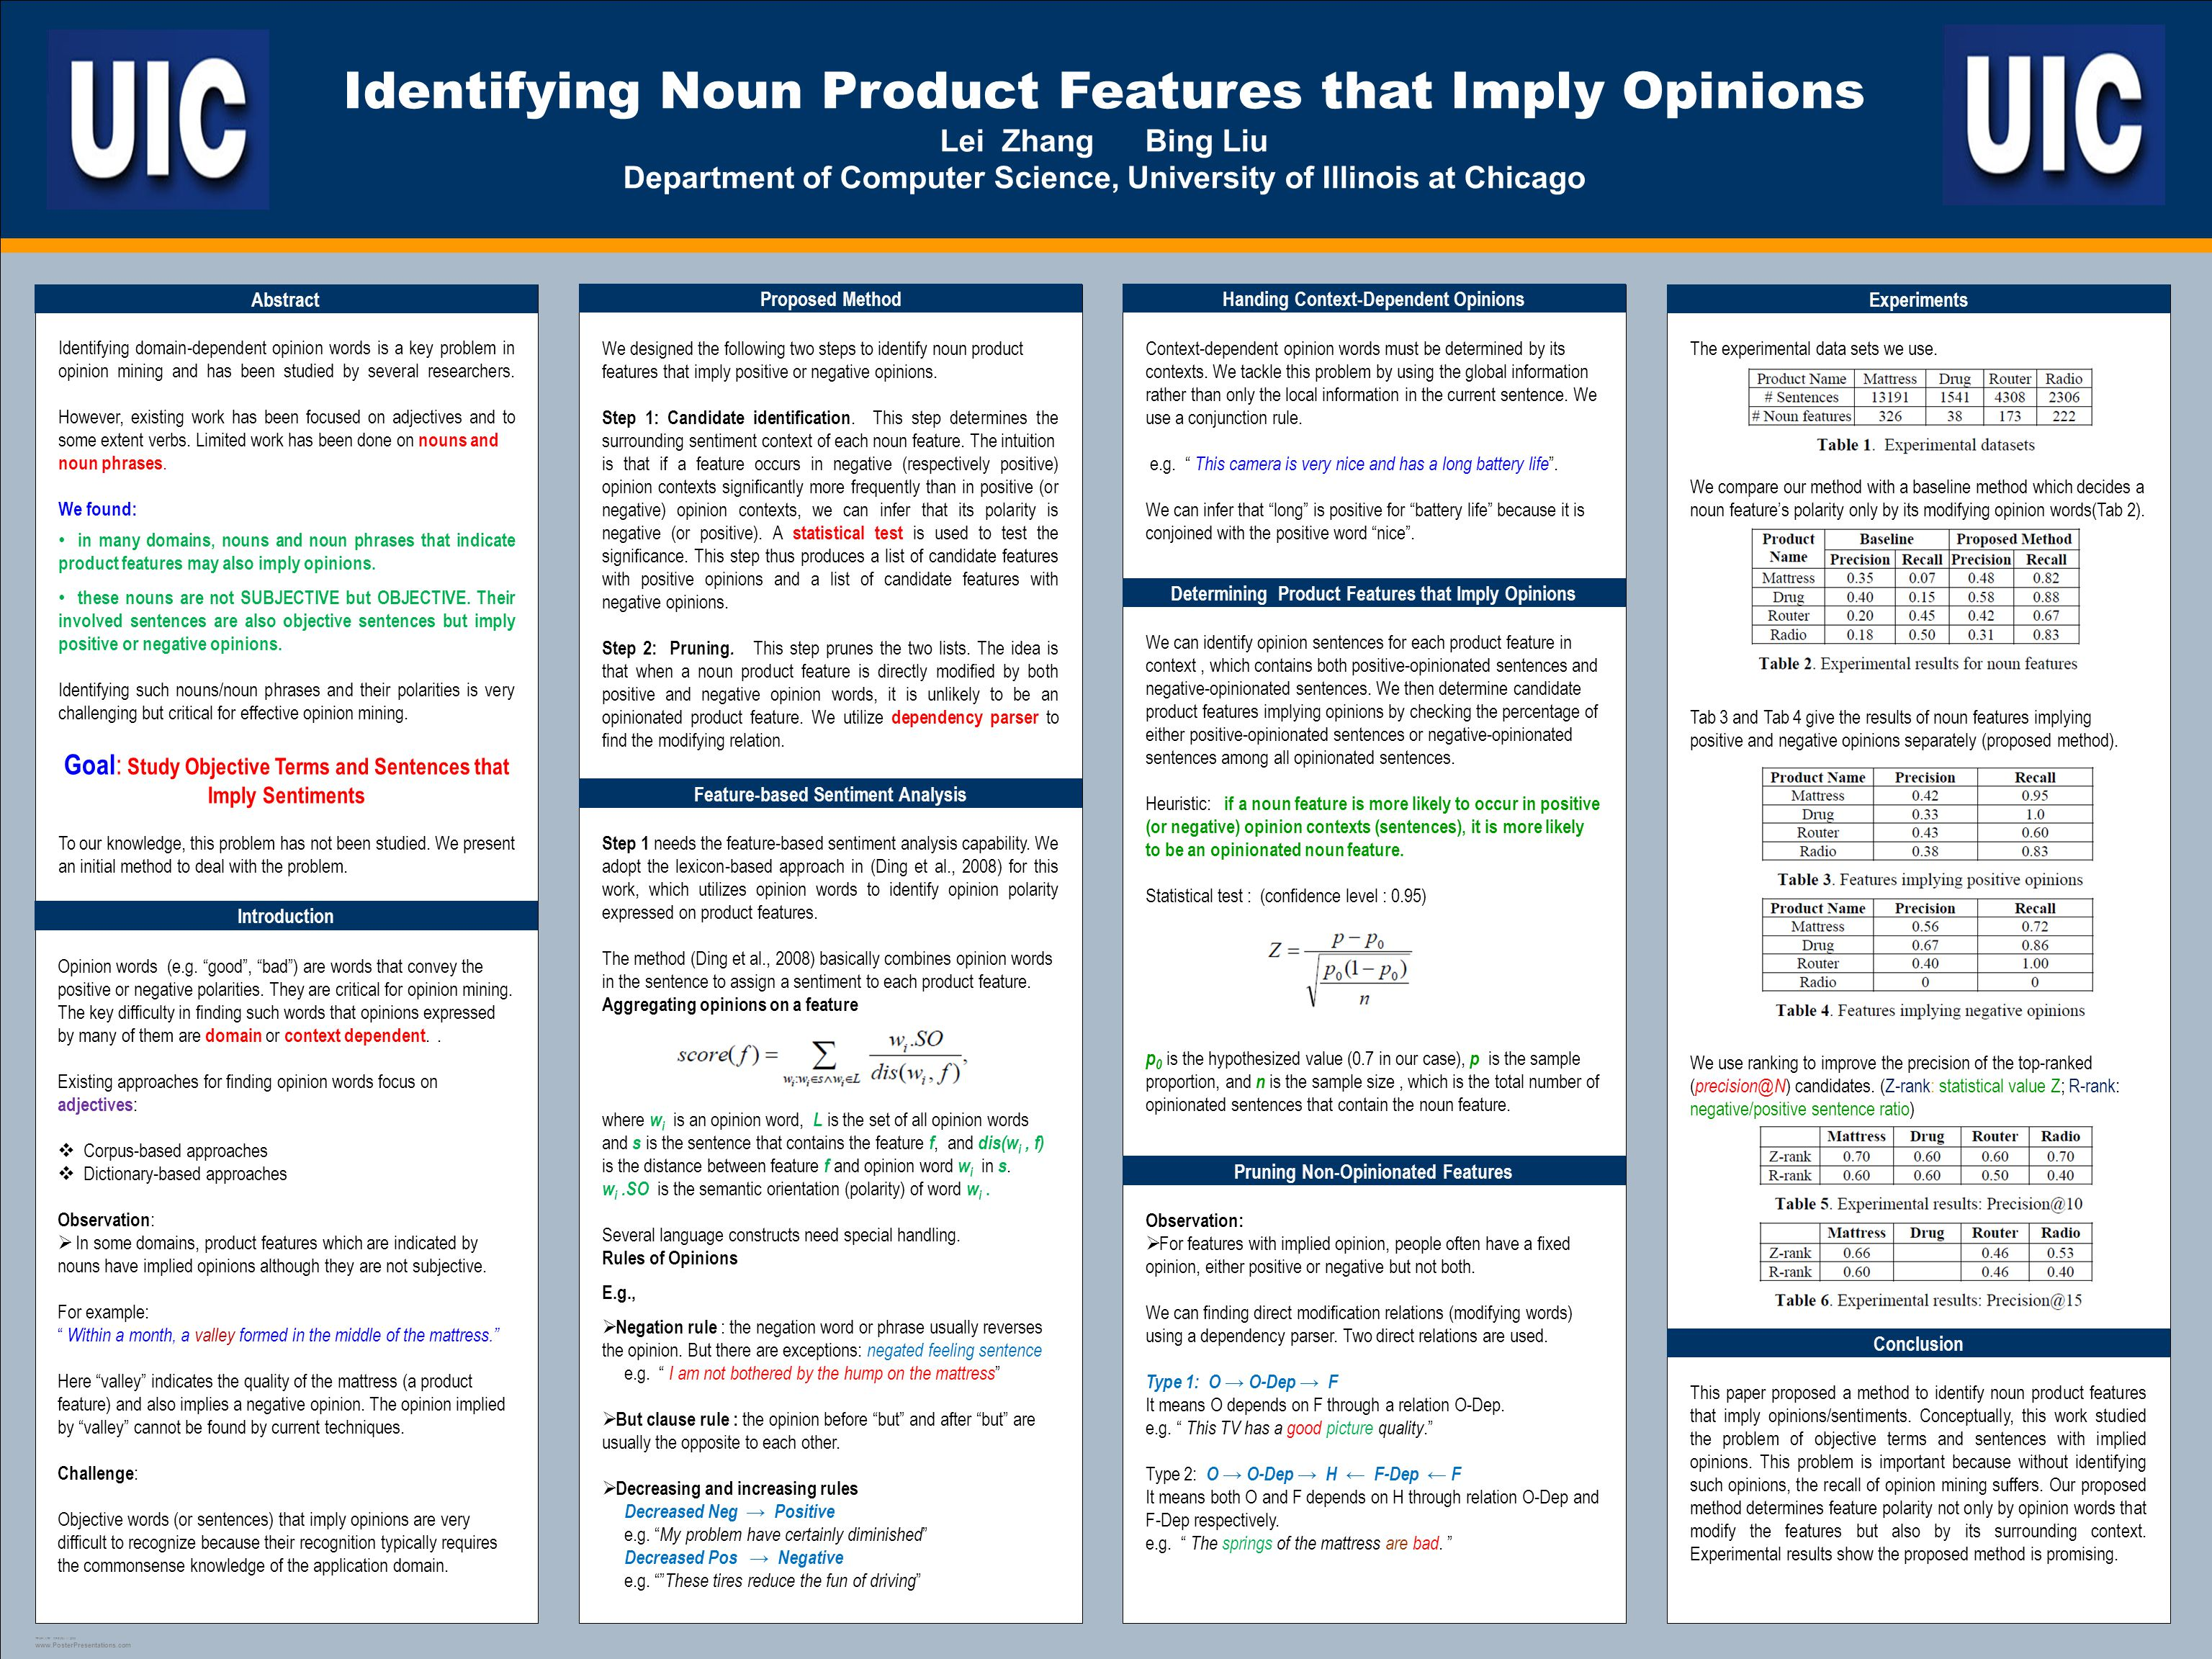 TEMPLATE DESIGN © 2008 www.PosterPresentations.com Identifying Noun Product Features that Imply Opinions Lei Zhang Bing Liu Department of Computer Science, University of Illinois at Chicago Abstract Identifying domain-dependent opinion words is a key problem in opinion mining and has been studied by several researchers.